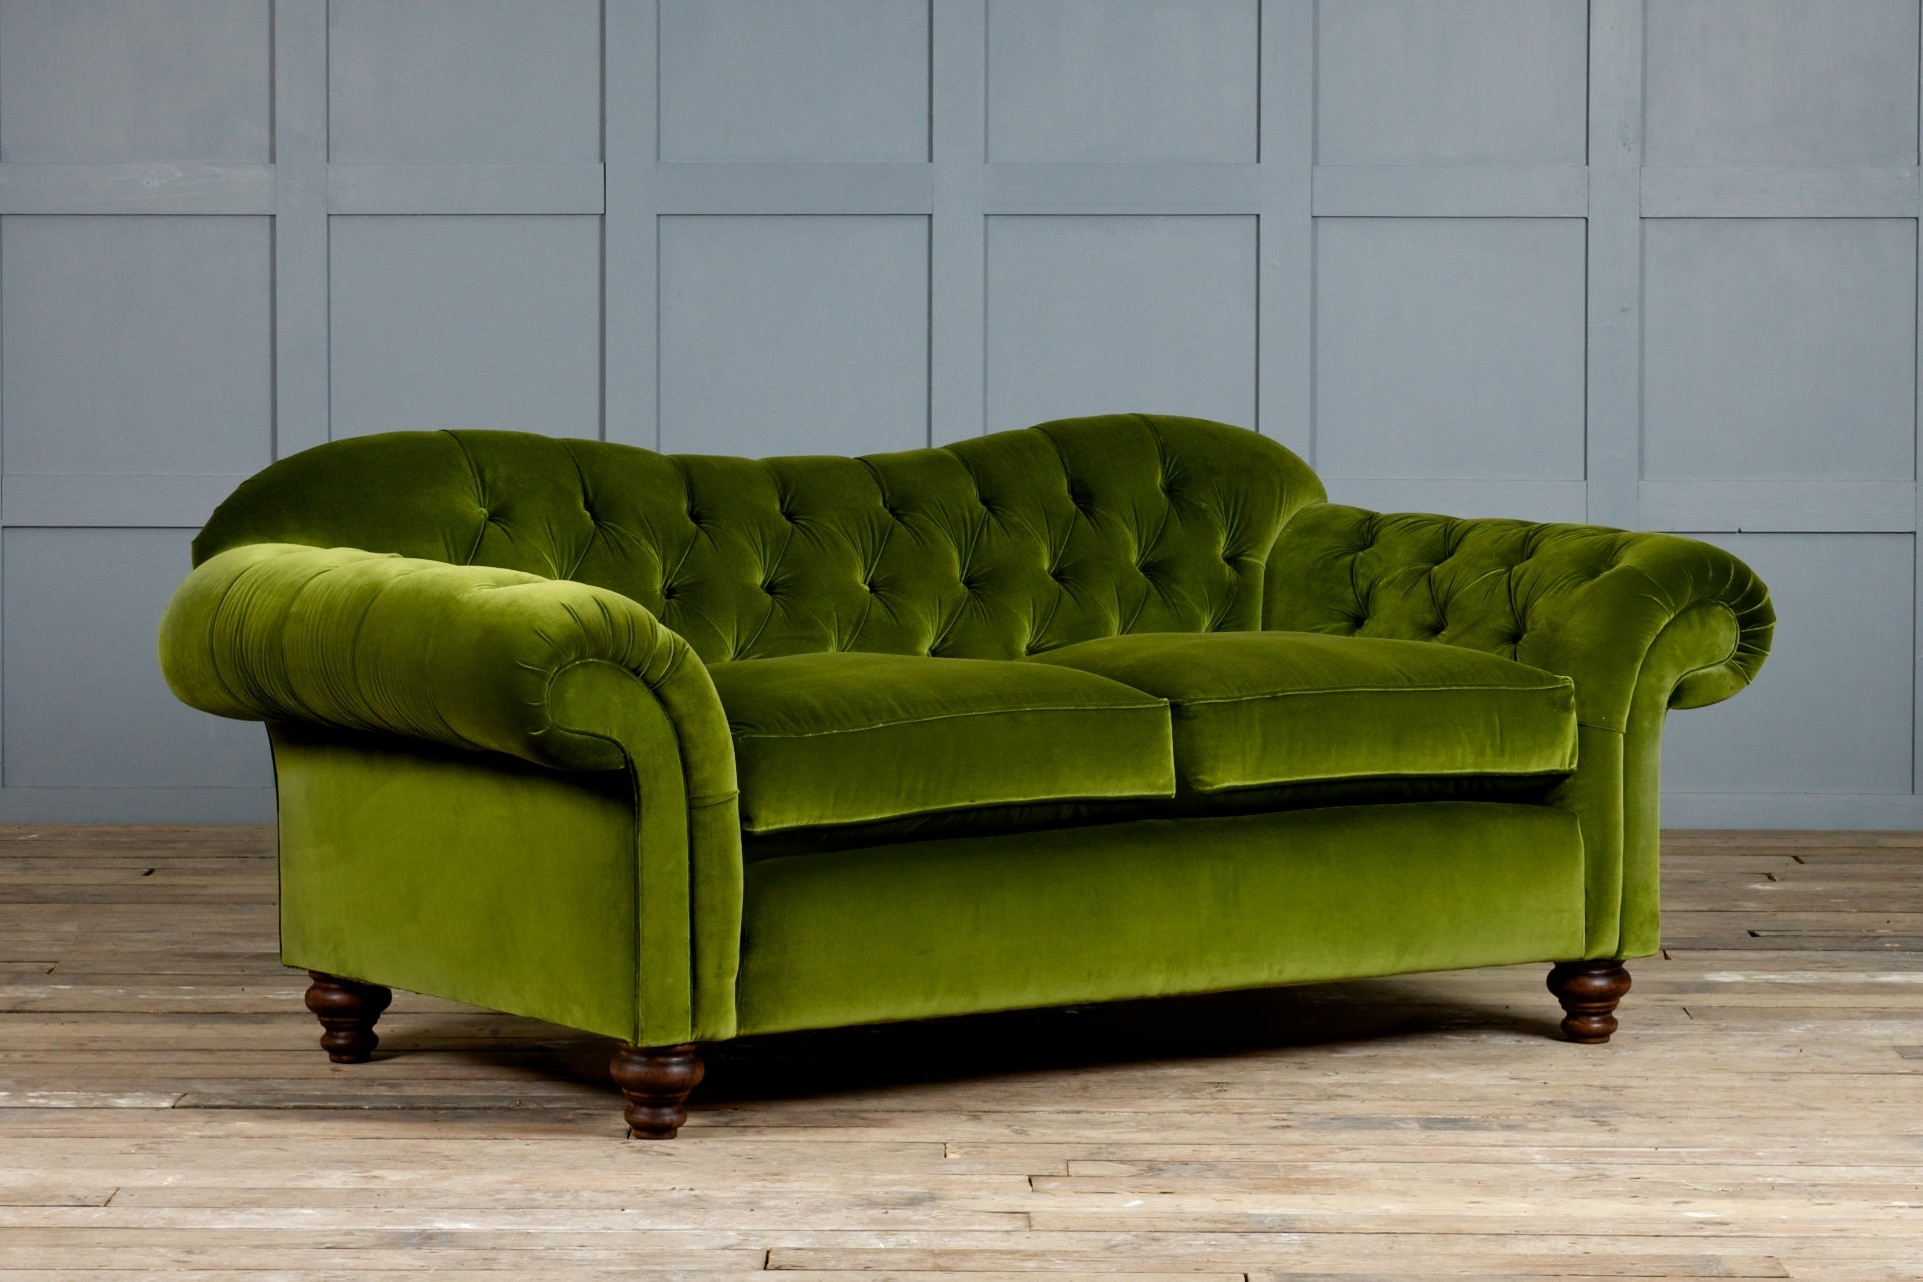 Well Liked Furniture : Perfect Green Velvet Couch 85 In Modern Sofa Ideas Throughout Green Sofa Chairs (View 5 of 15)